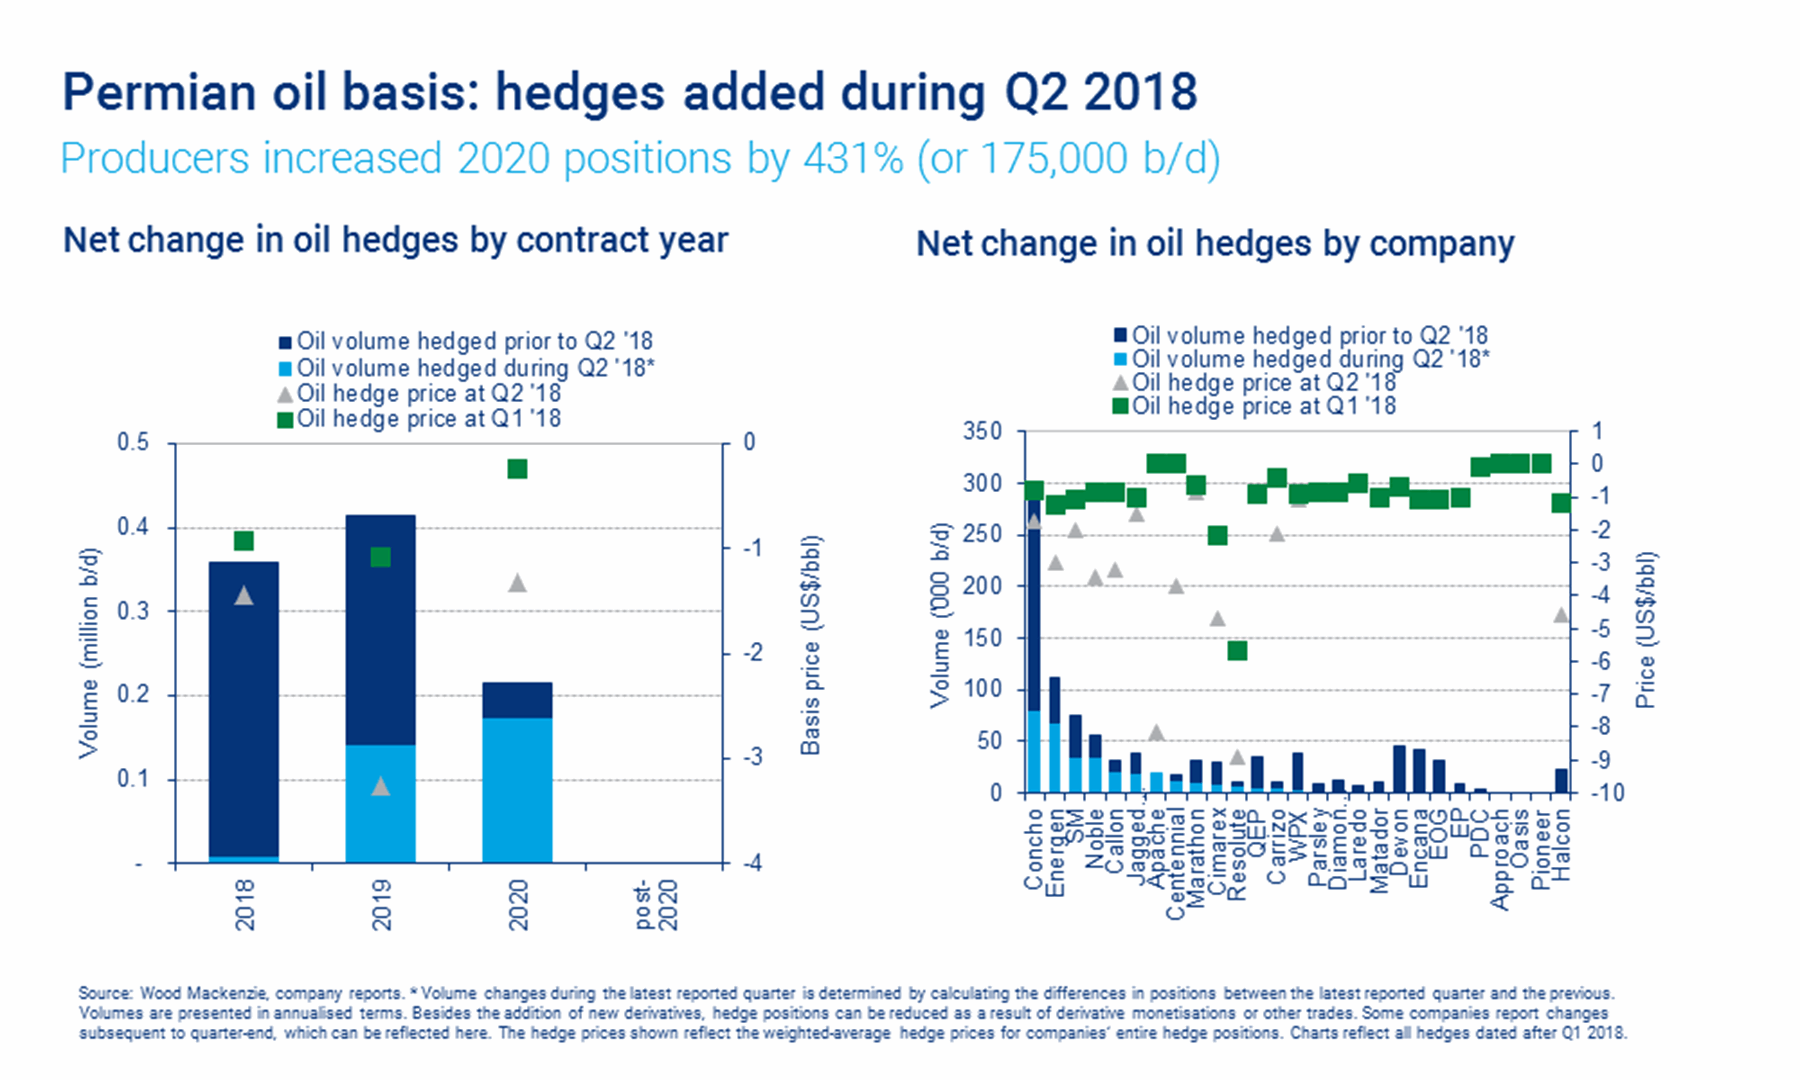 What Does The Surge In Oil-Basis Hedges Tell Us About Permian